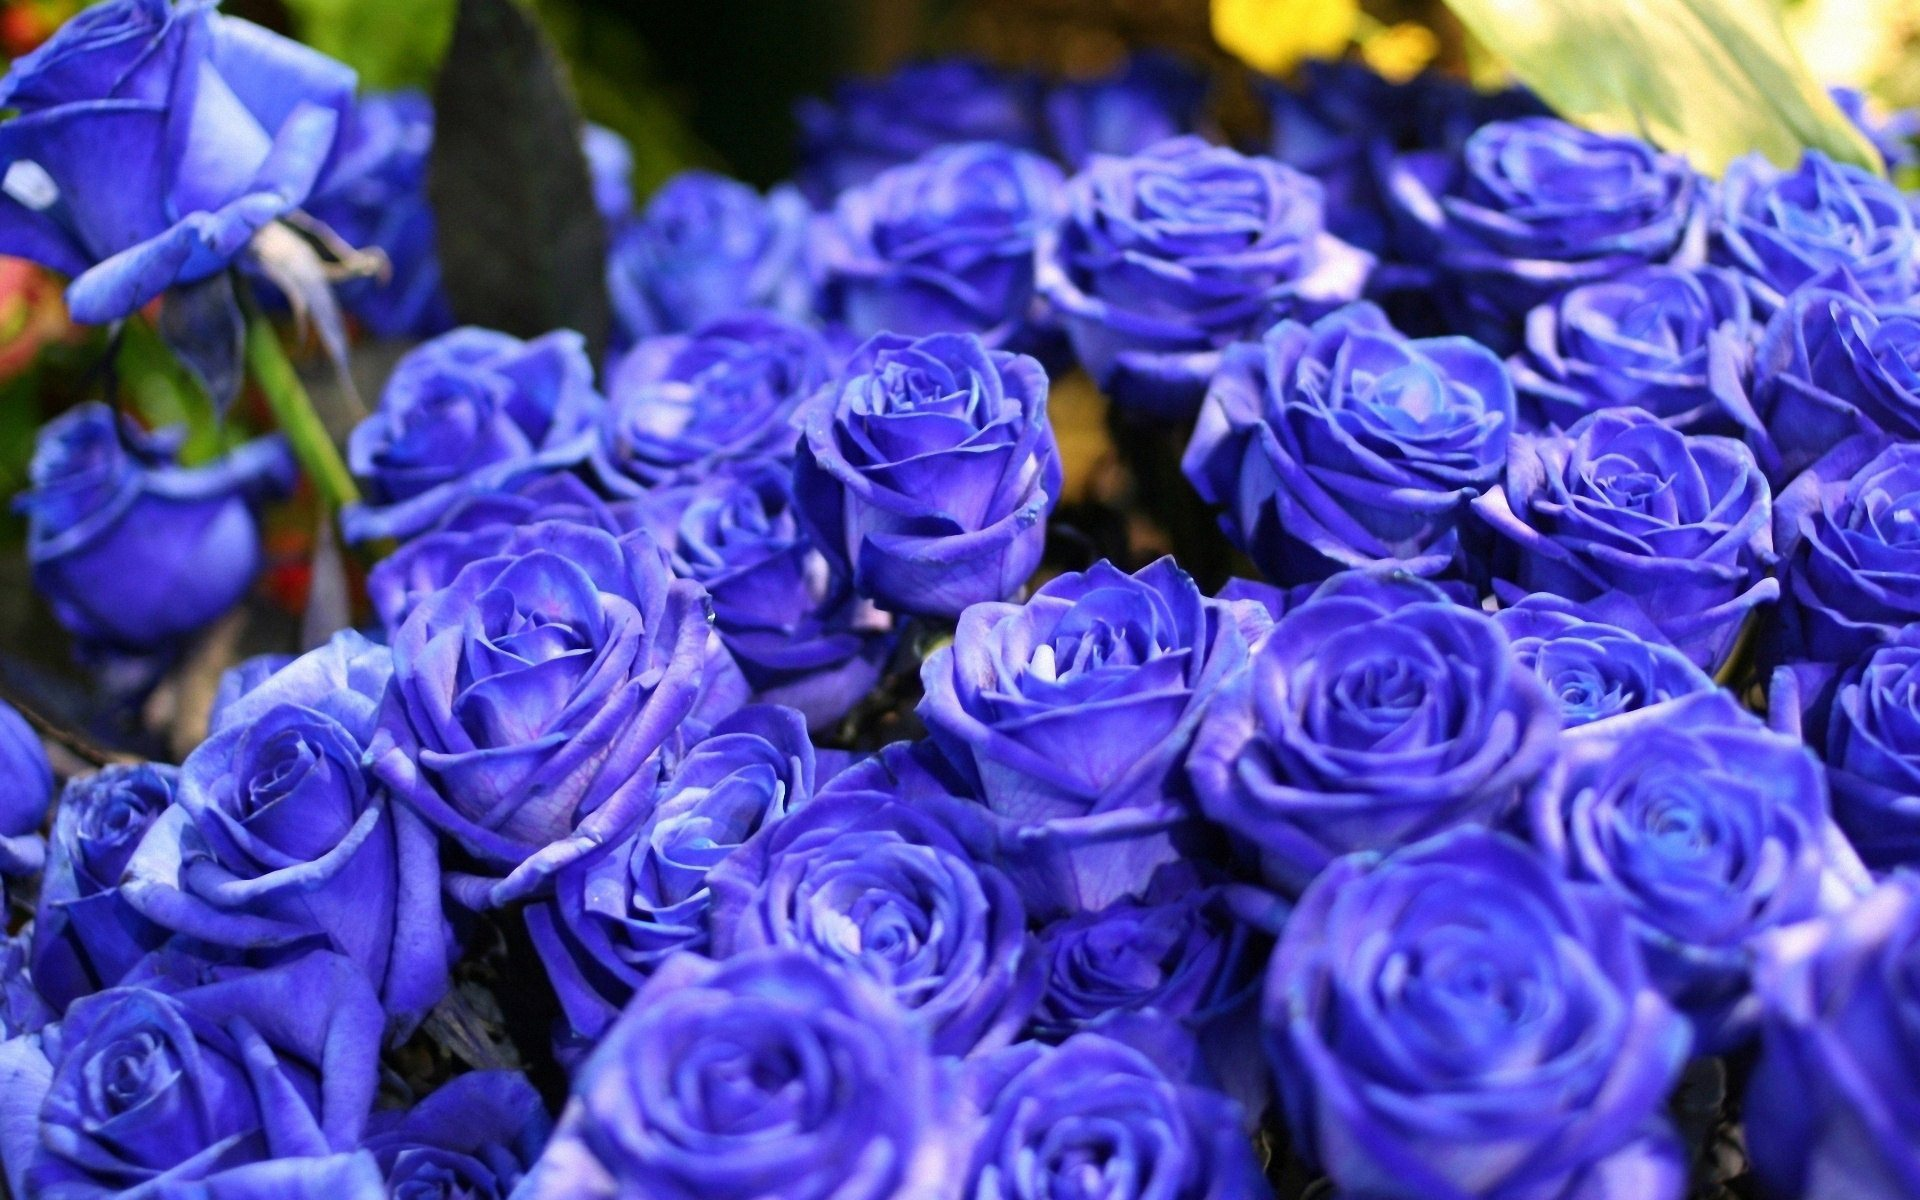 blue roses wallpaper background | hd wallpaper background